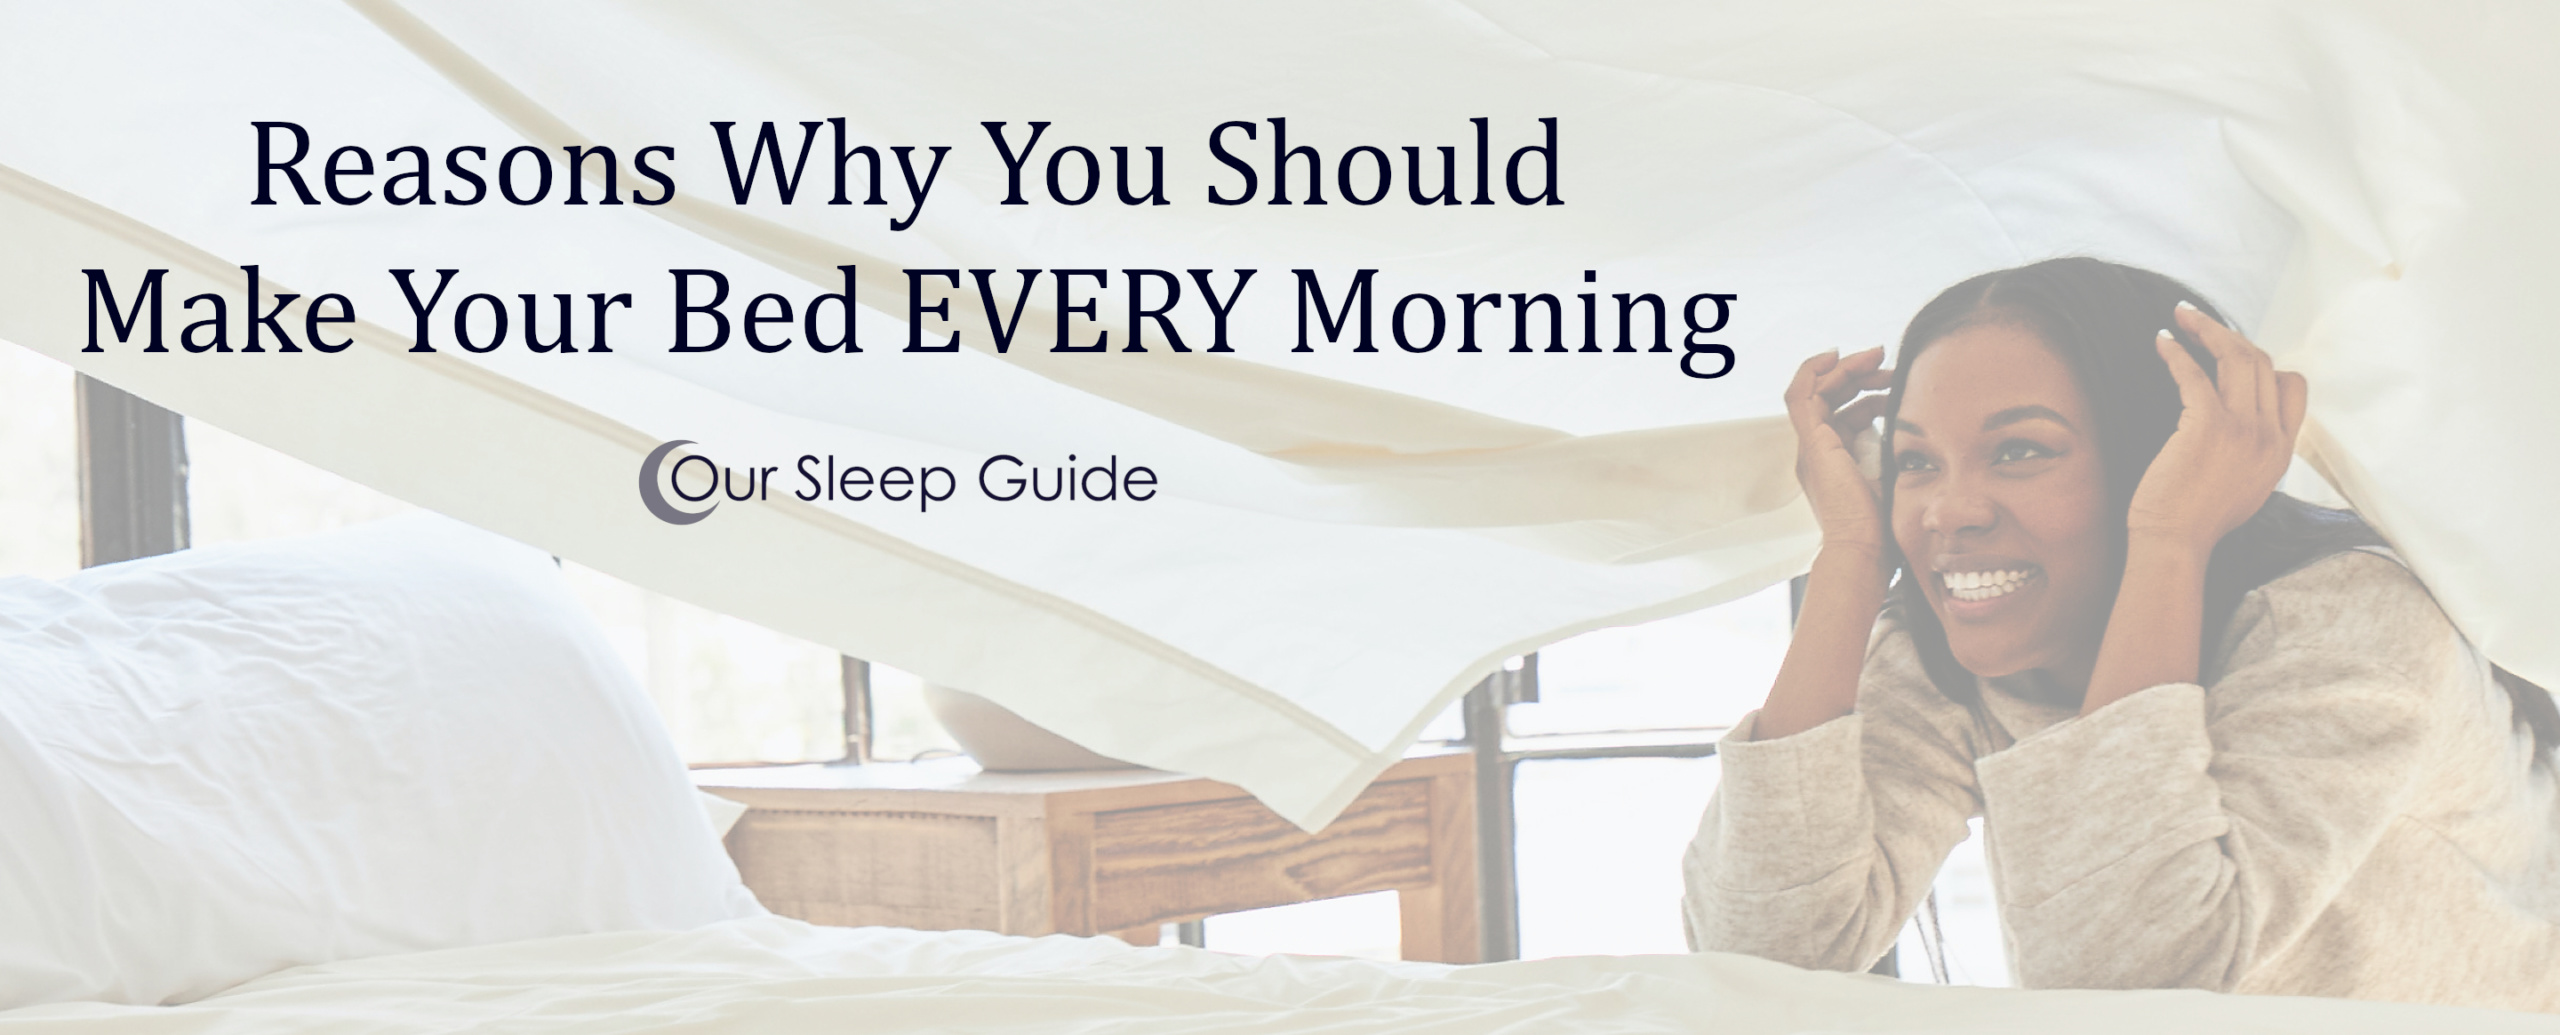 Why You Should Make Your Bed EVERY Morning